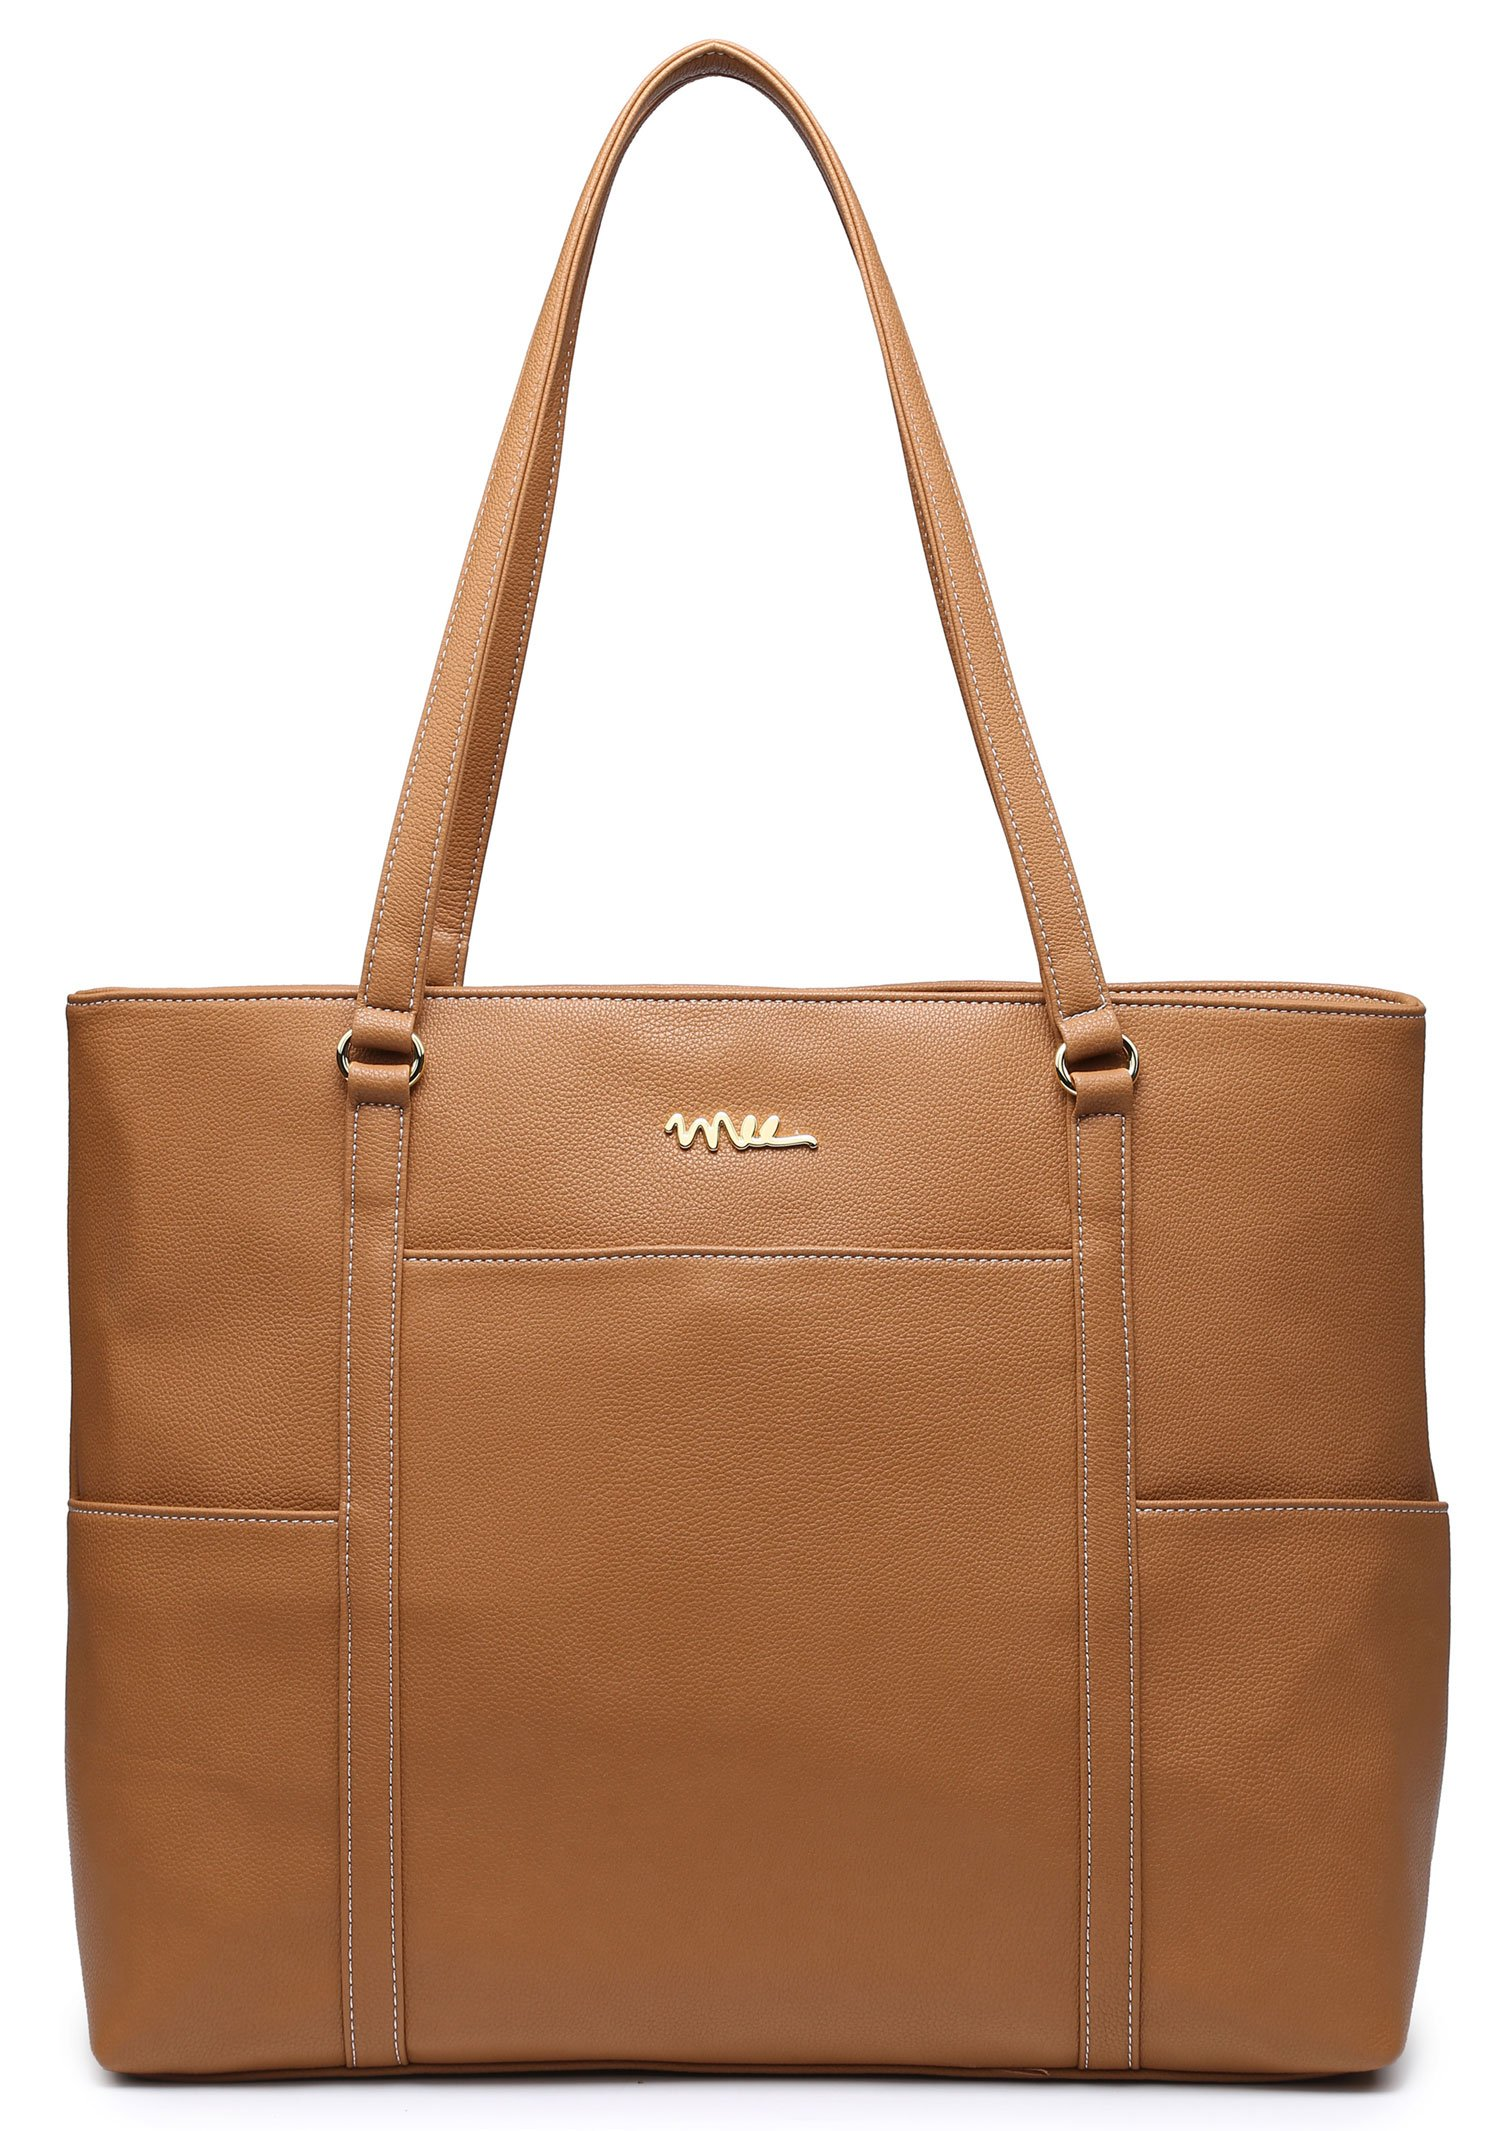 NNEE Classic Laptop Leather Tote Bag for 15 15.6 inch Notebook Computers Travel Carrying Bag with Smart Trolley Strap Design - Light Brown